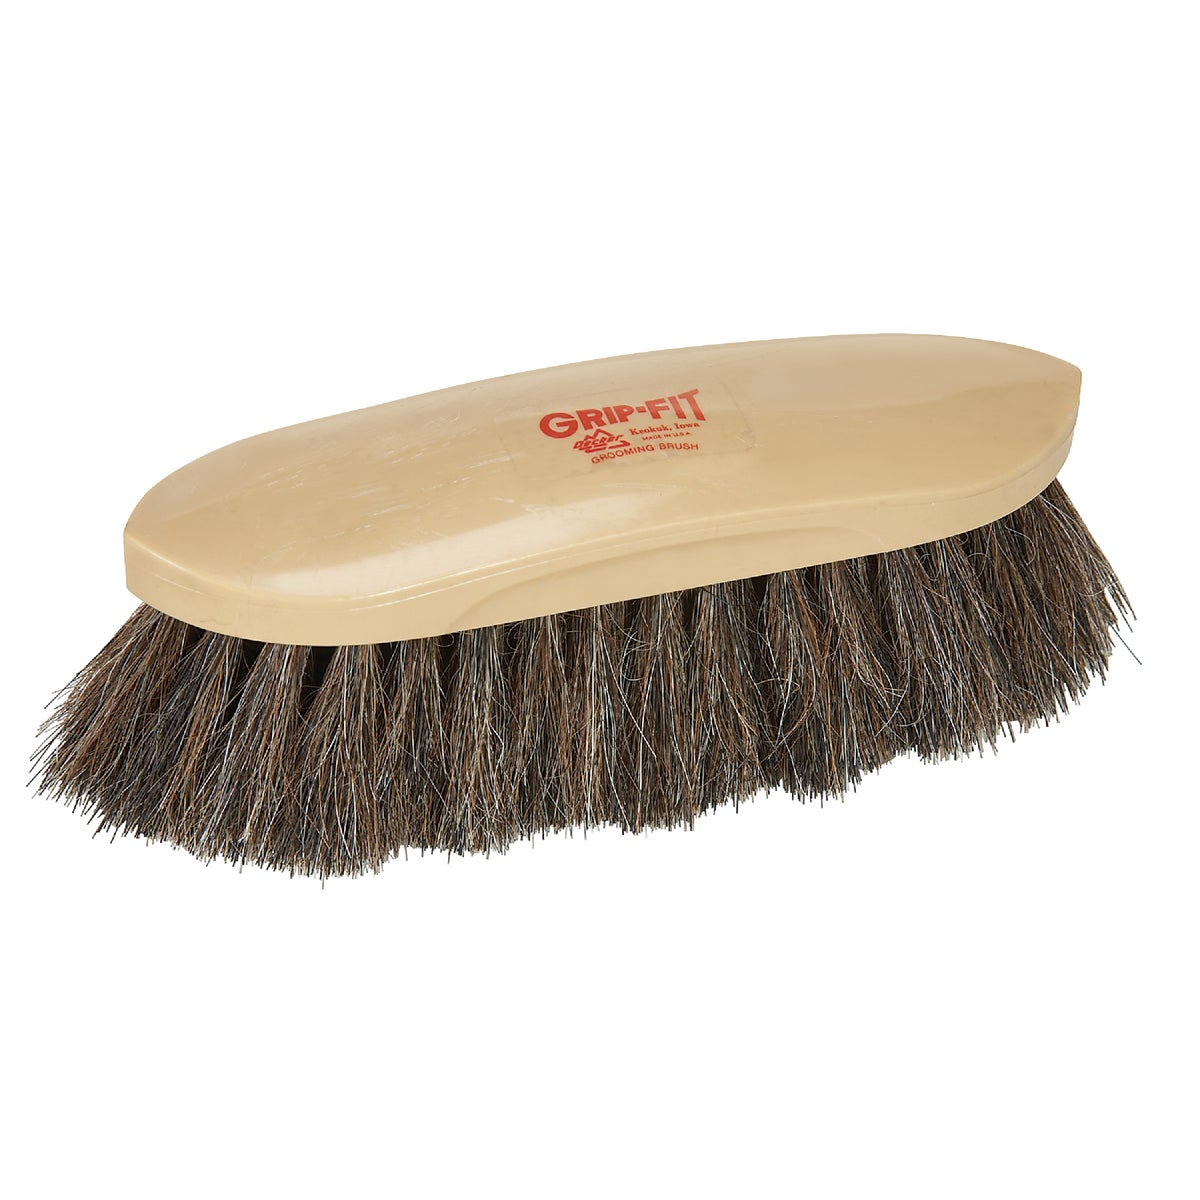 HORSEHAIR GROOMING BRUSH - 65 by Decker Manufacturing